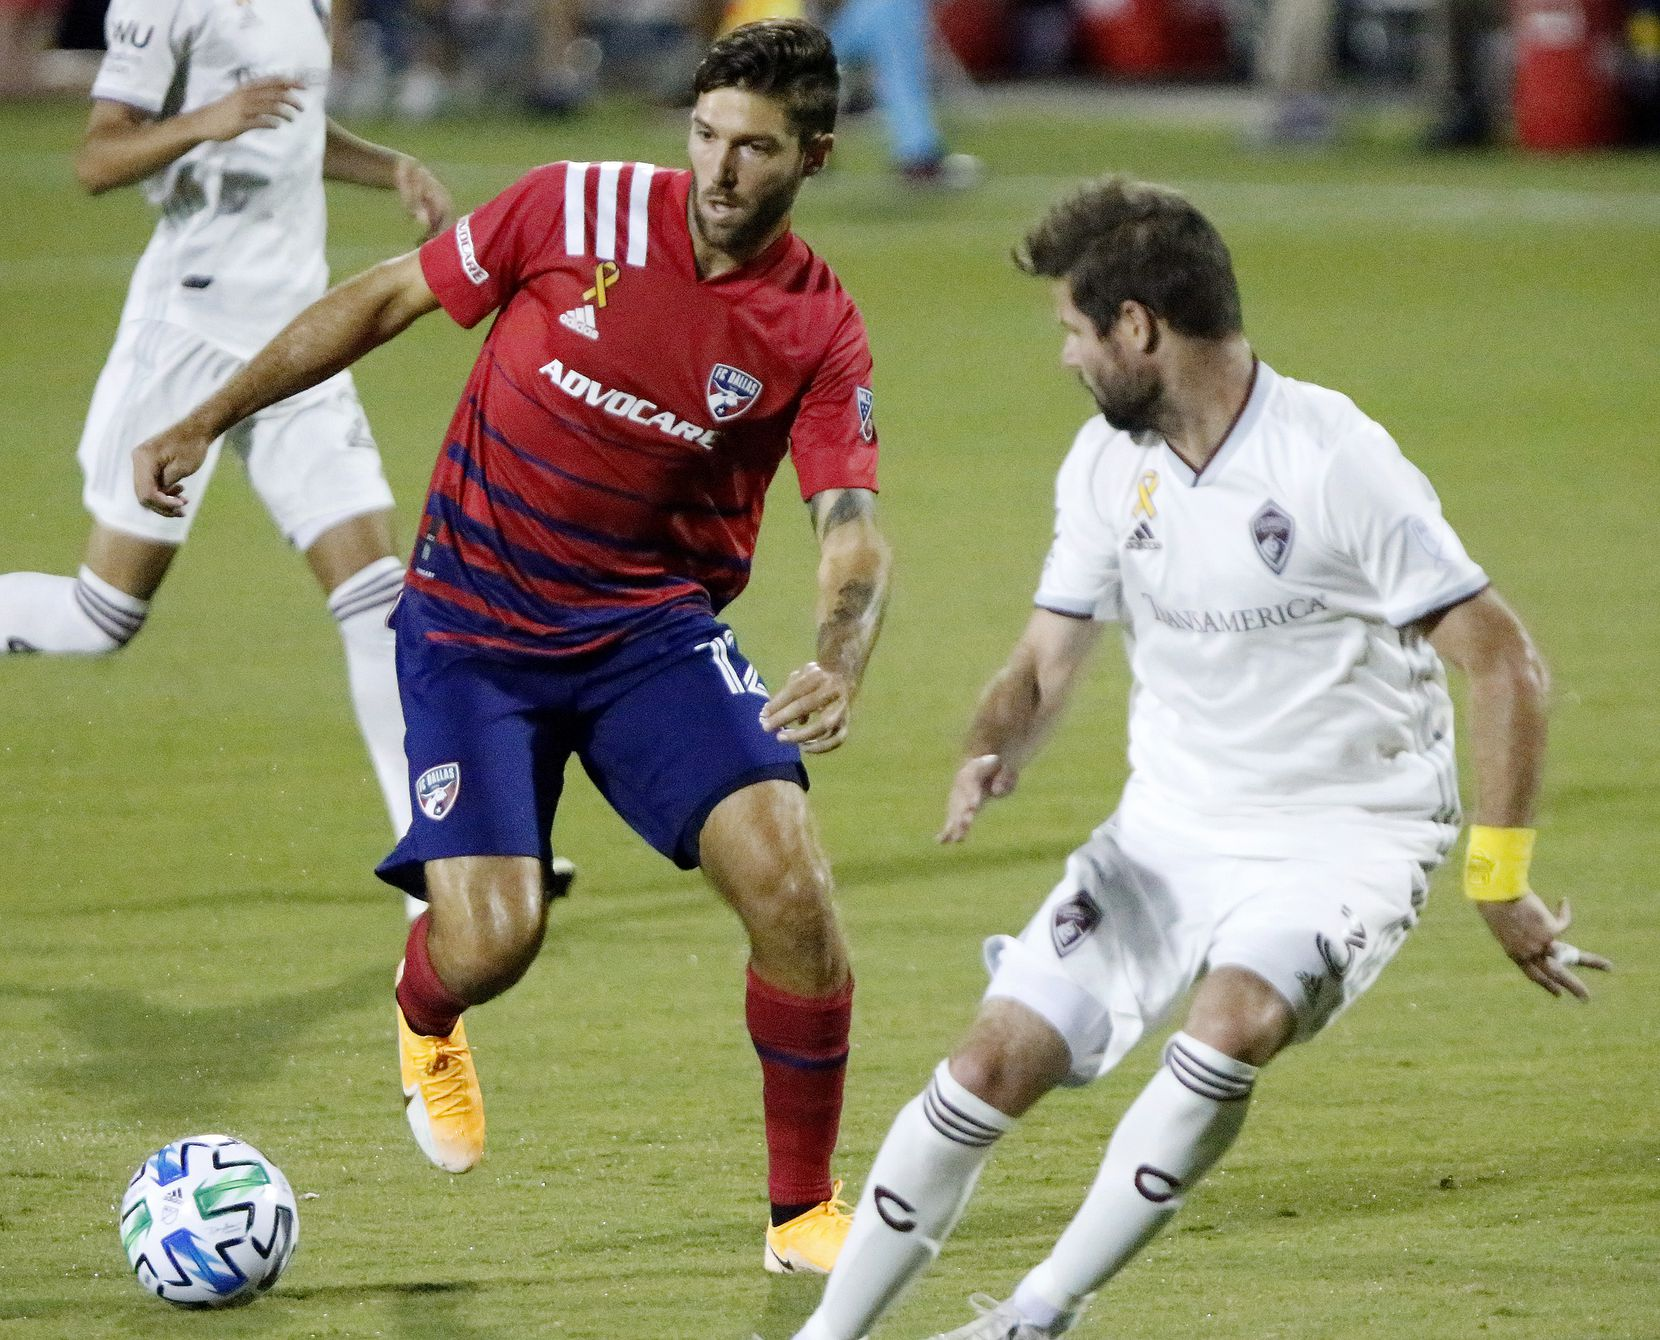 FC Dallas midfielder Ryan Hollingshead (12) dribbles past Colorado Rapids defender Drew Moor (3) during the first half as FC Dallas hosted the Colorado Rapids at Toyota Stadium in Frisco on Wednesday night, September 16, 2020. (Stewart F. House/Special Contributor)